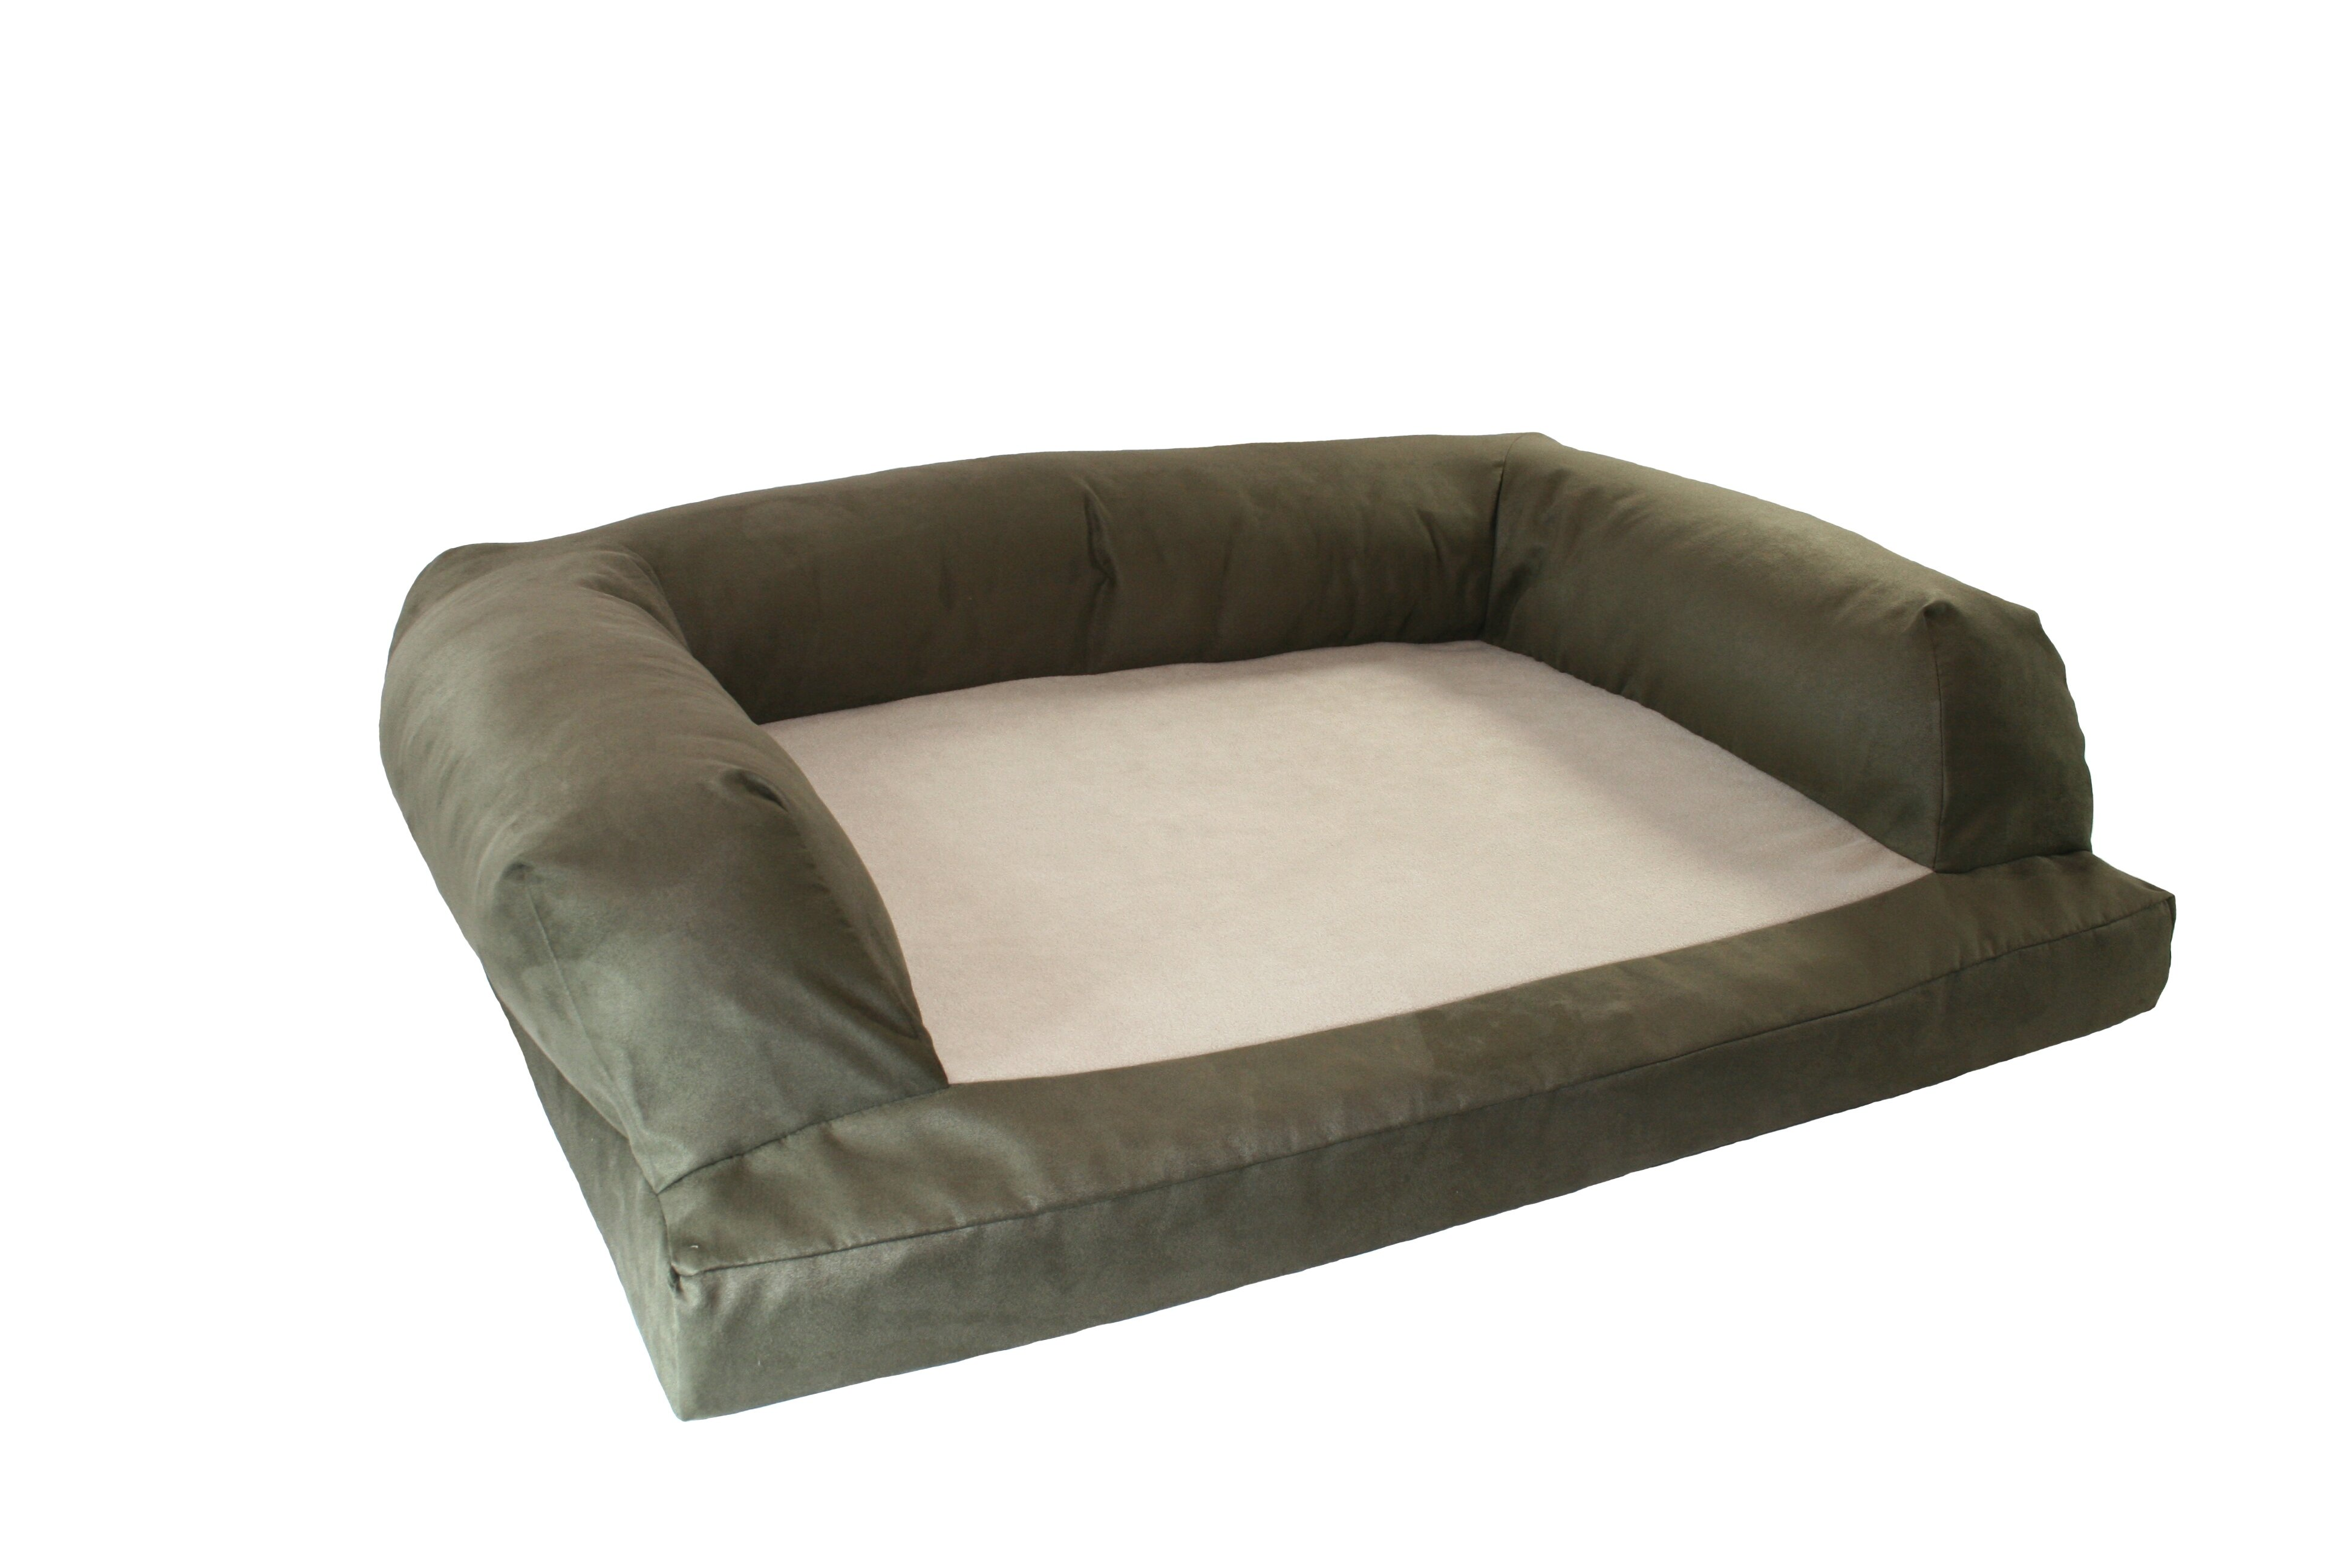 Hidden valley products baxter couch bolster dog bed wayfair for Couch polster